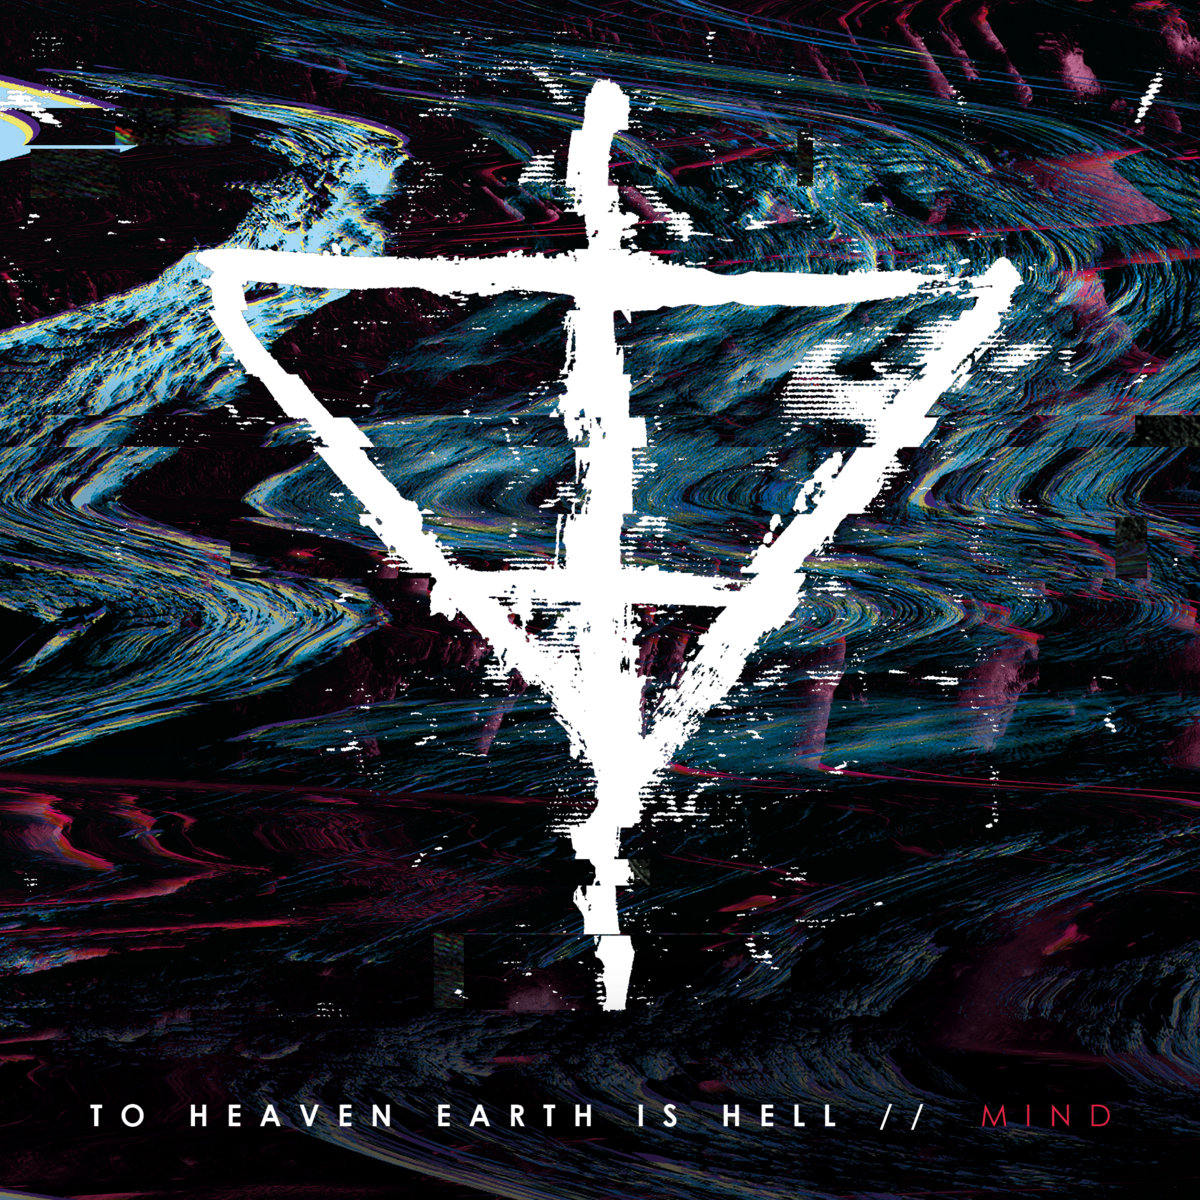 To Heaven Earth Is Hell - M!nd (2020)